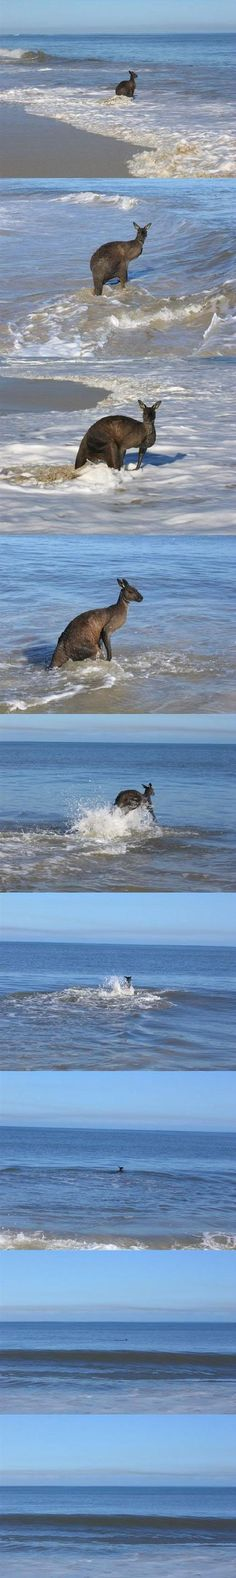 - kangaroo swimming